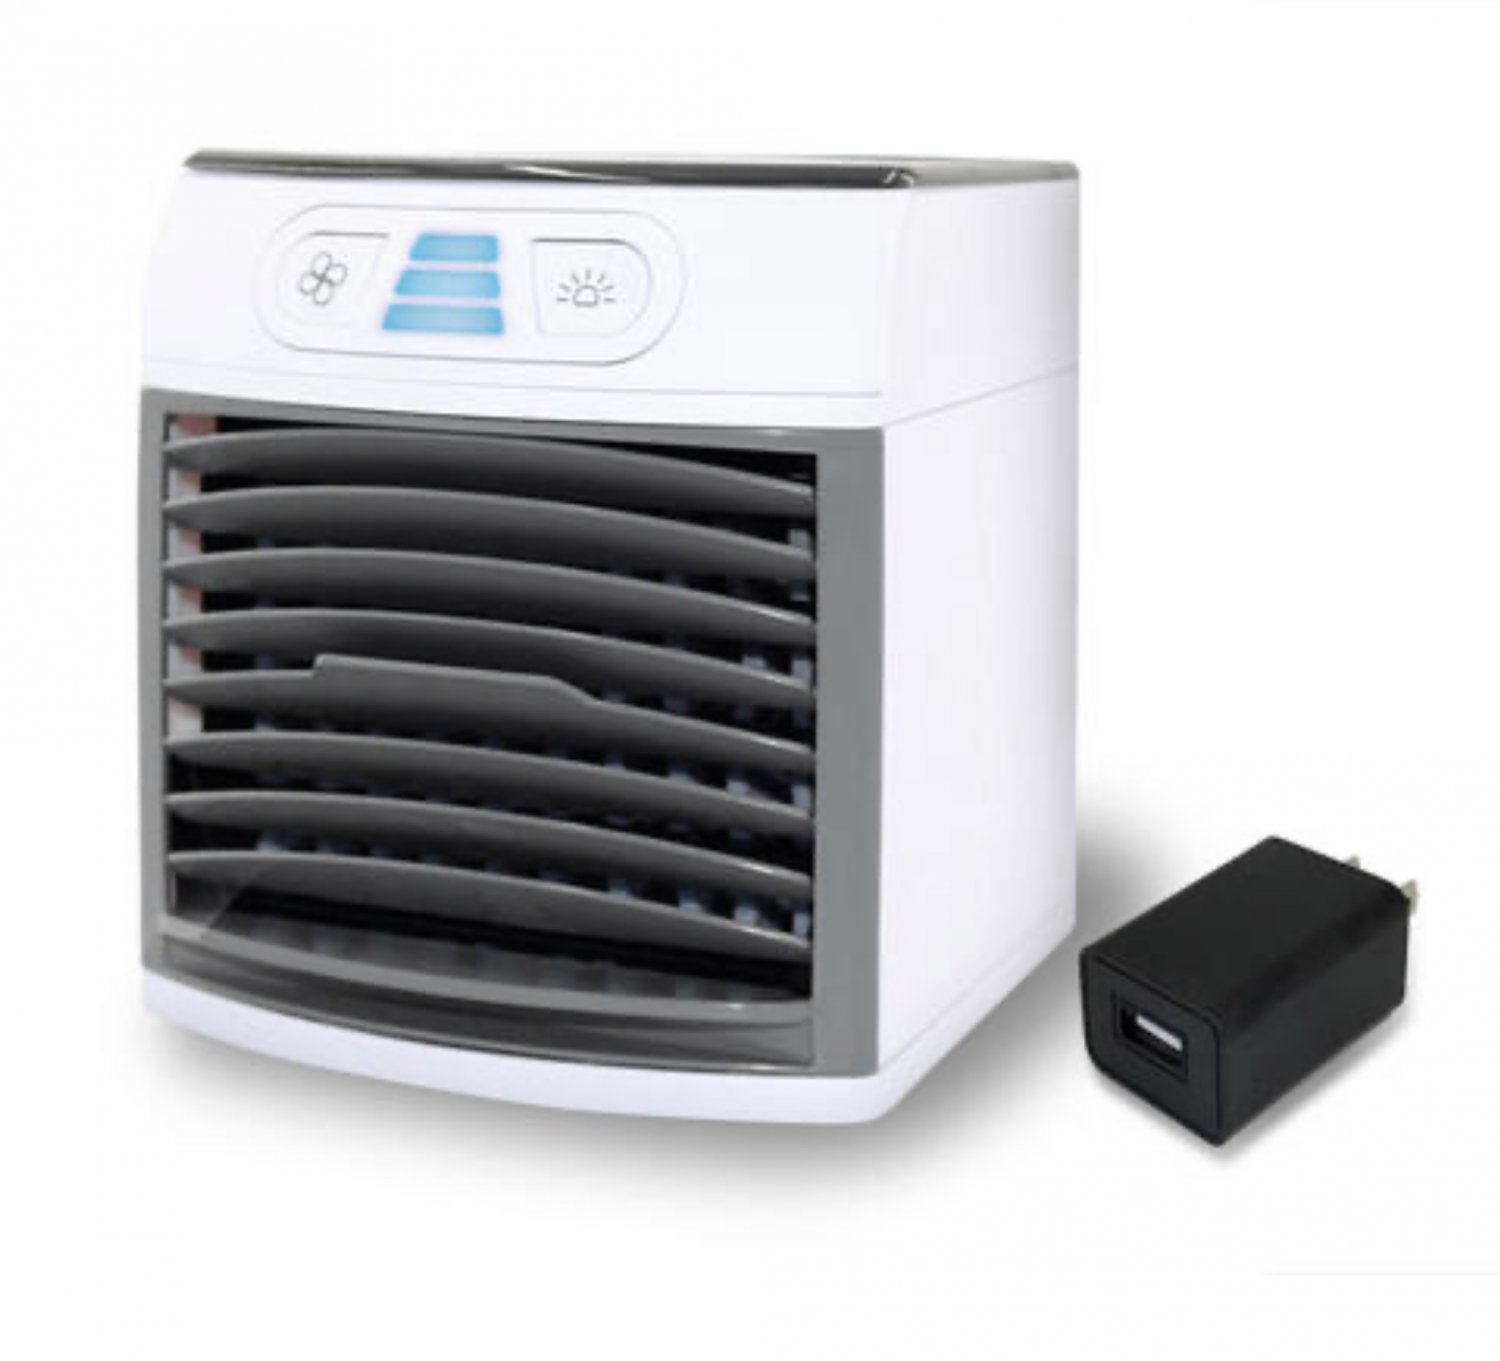 cooler portable air conditioner humidifier purifier